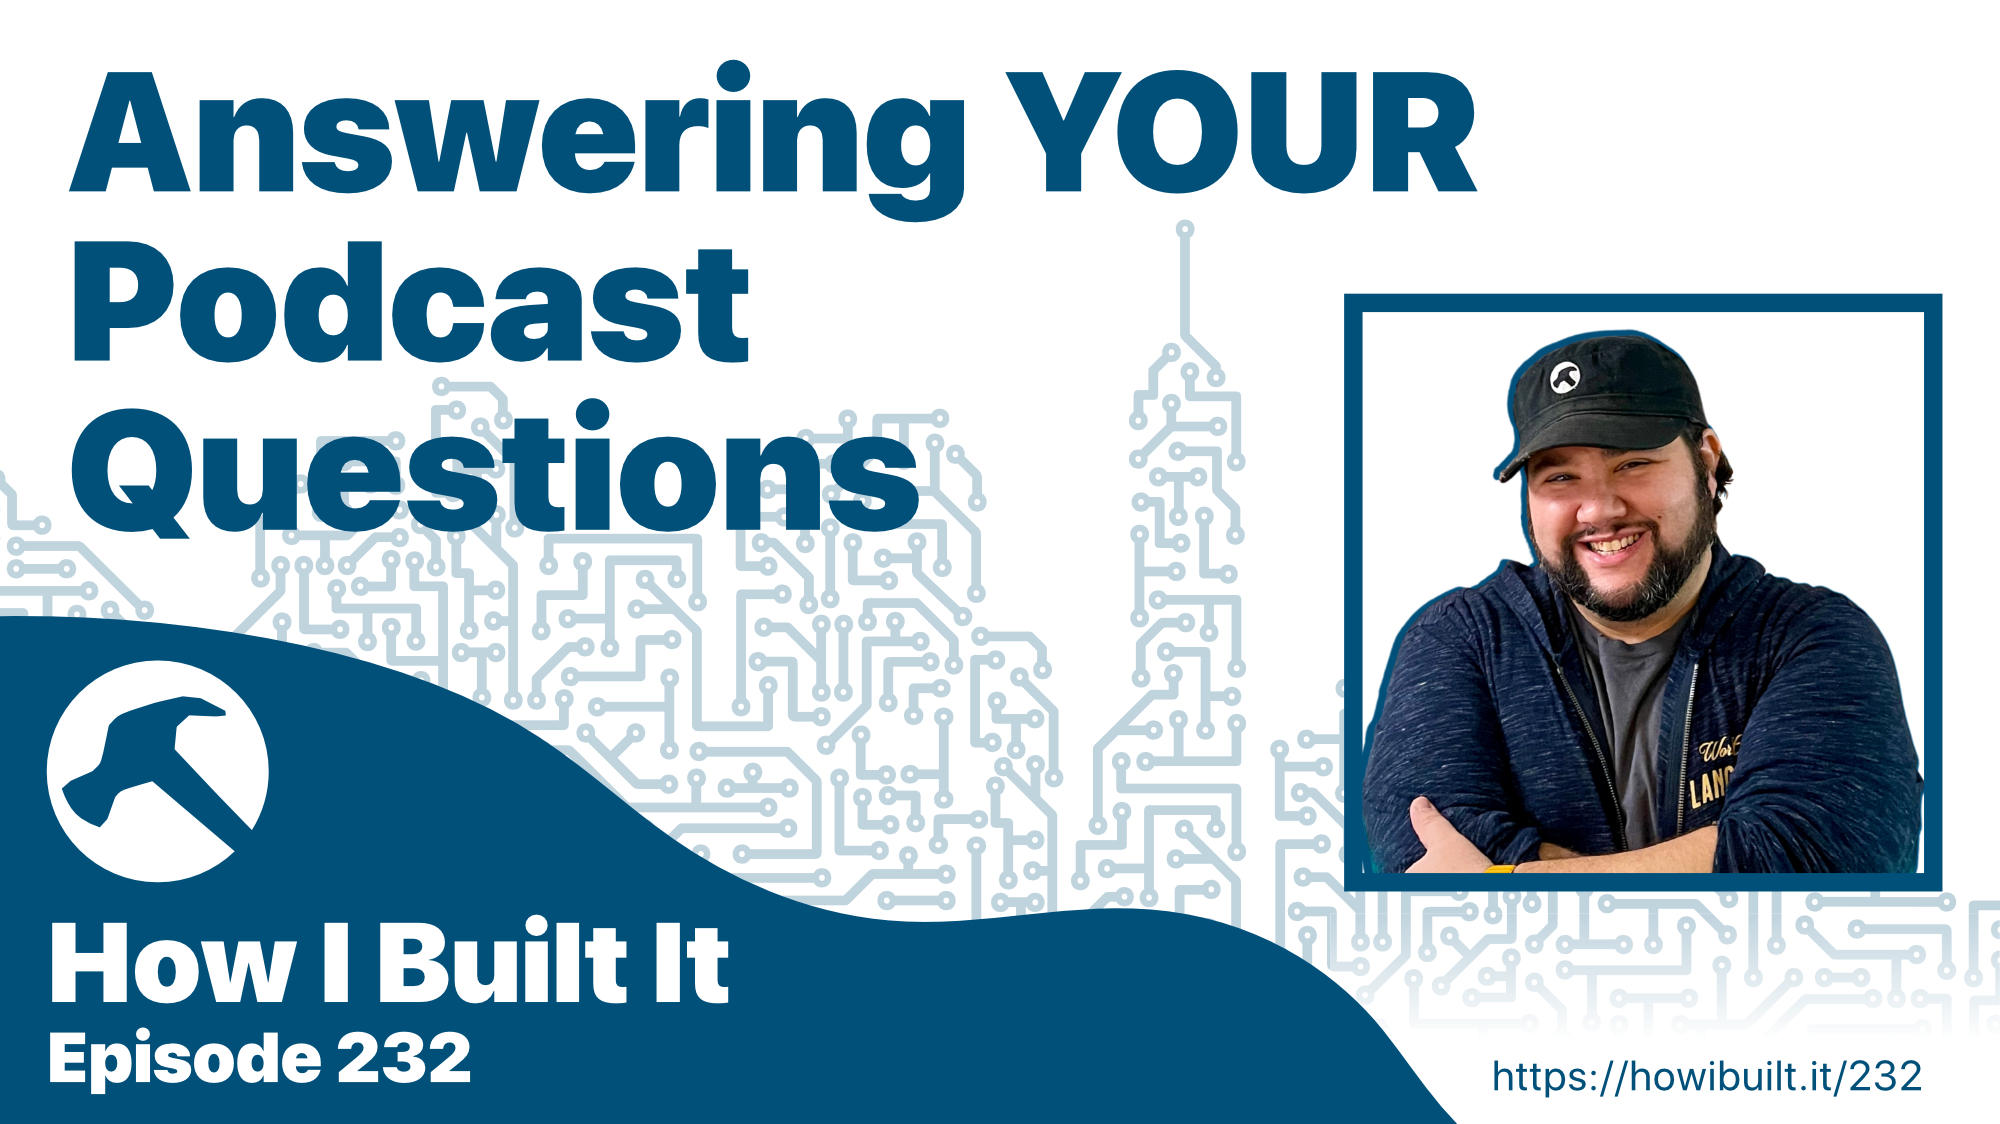 Answering YOUR Questions about Podcasting